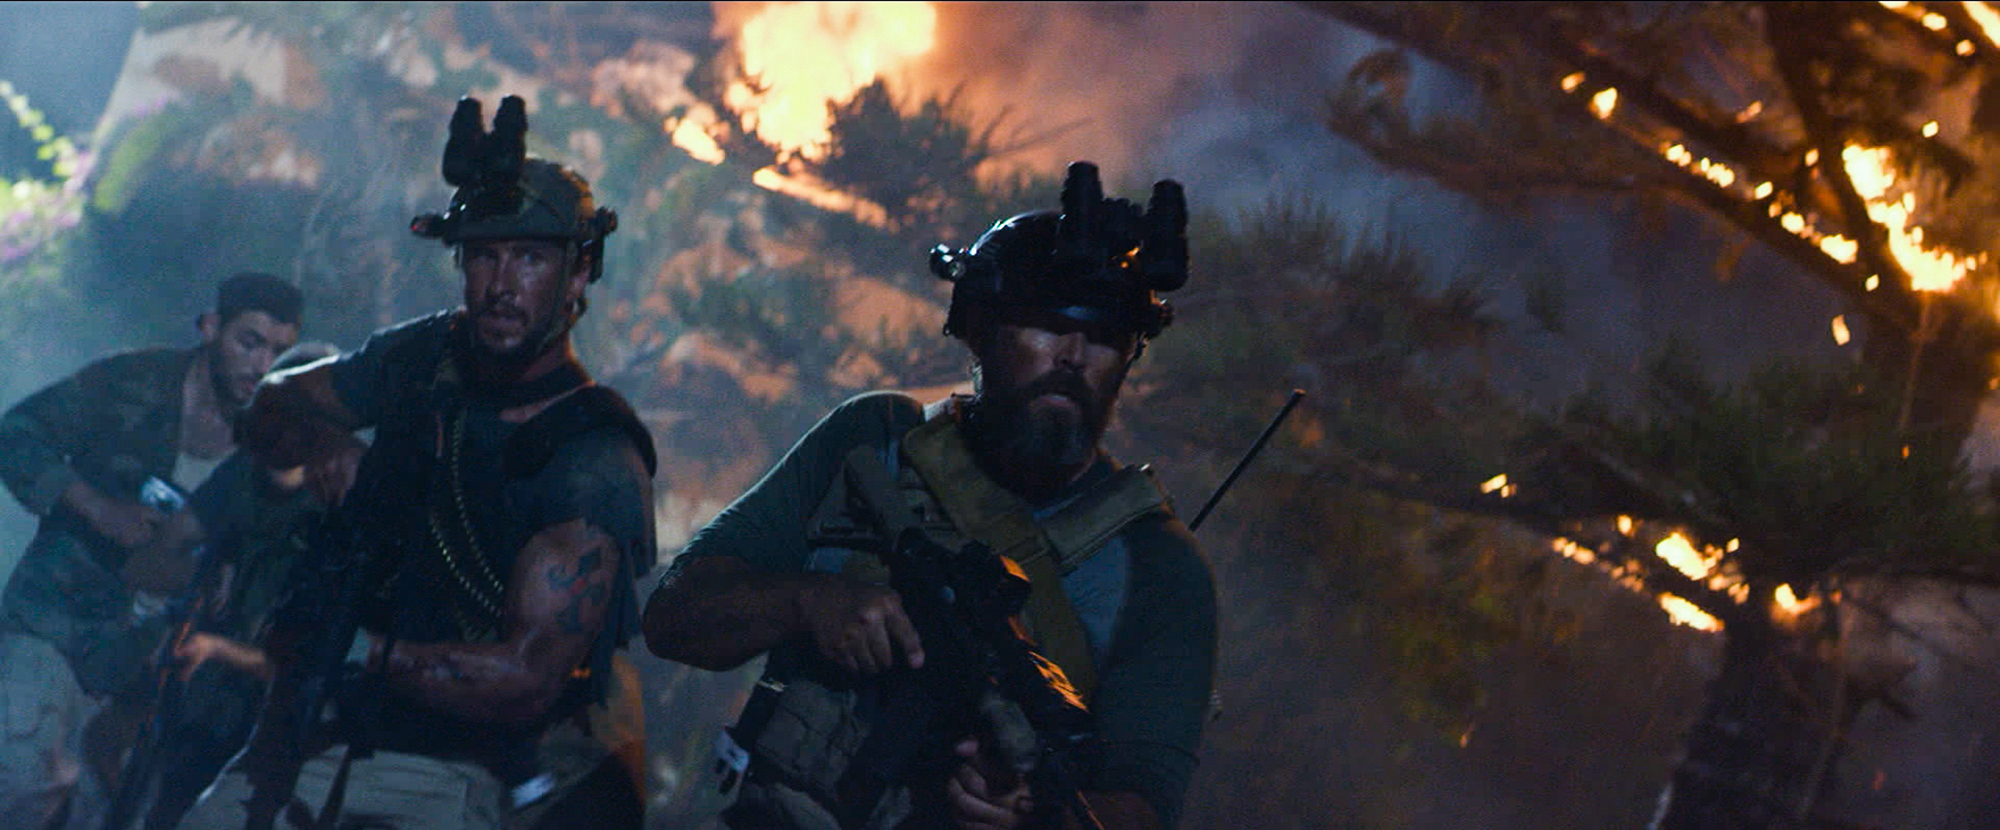 Review: 13 Hours Is A Profound Exploration Of Warfare – The